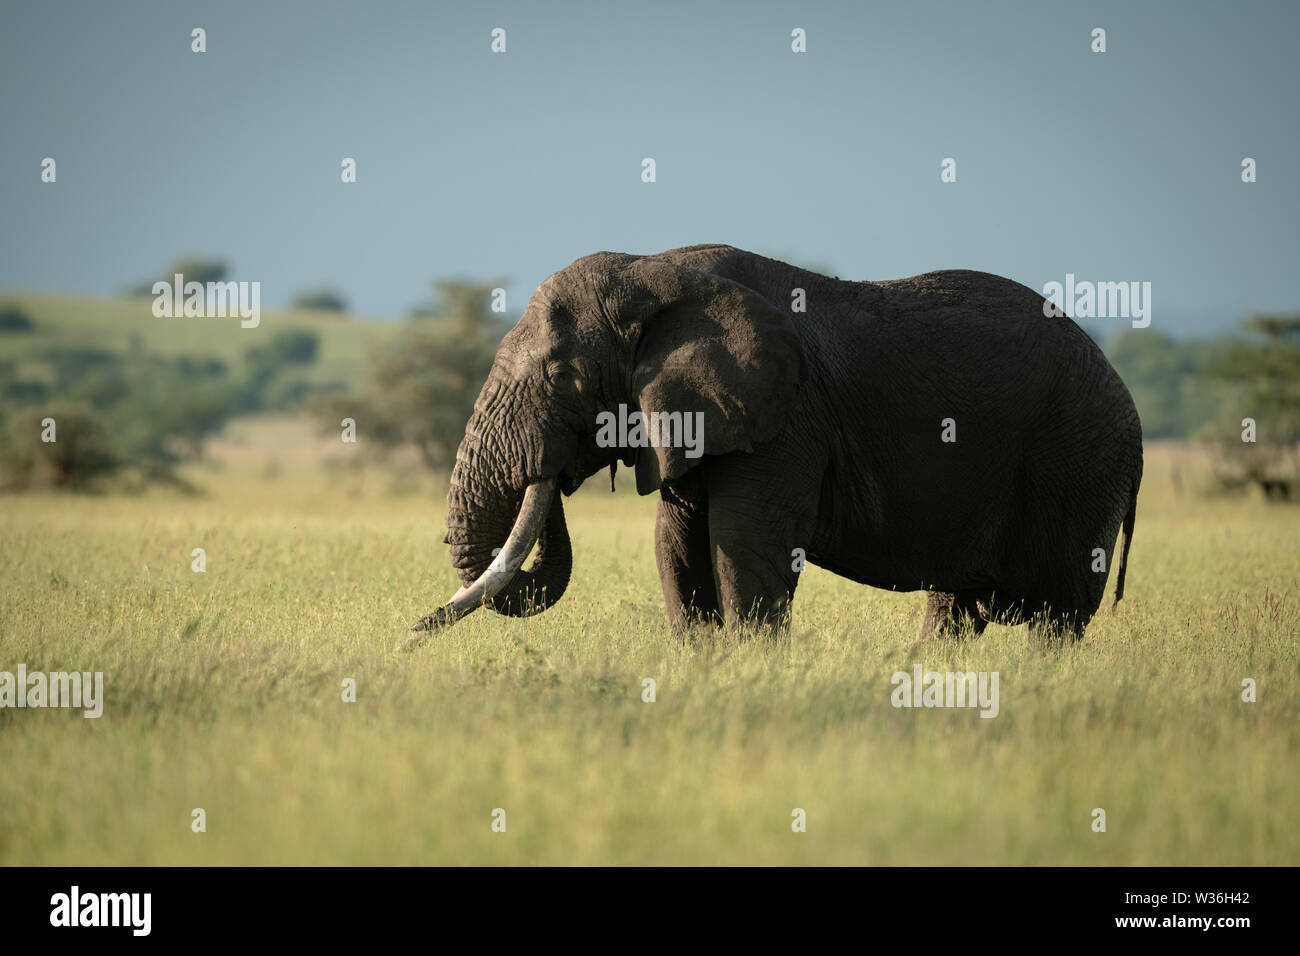 African bush elephant stands eating in grass - Stock Image